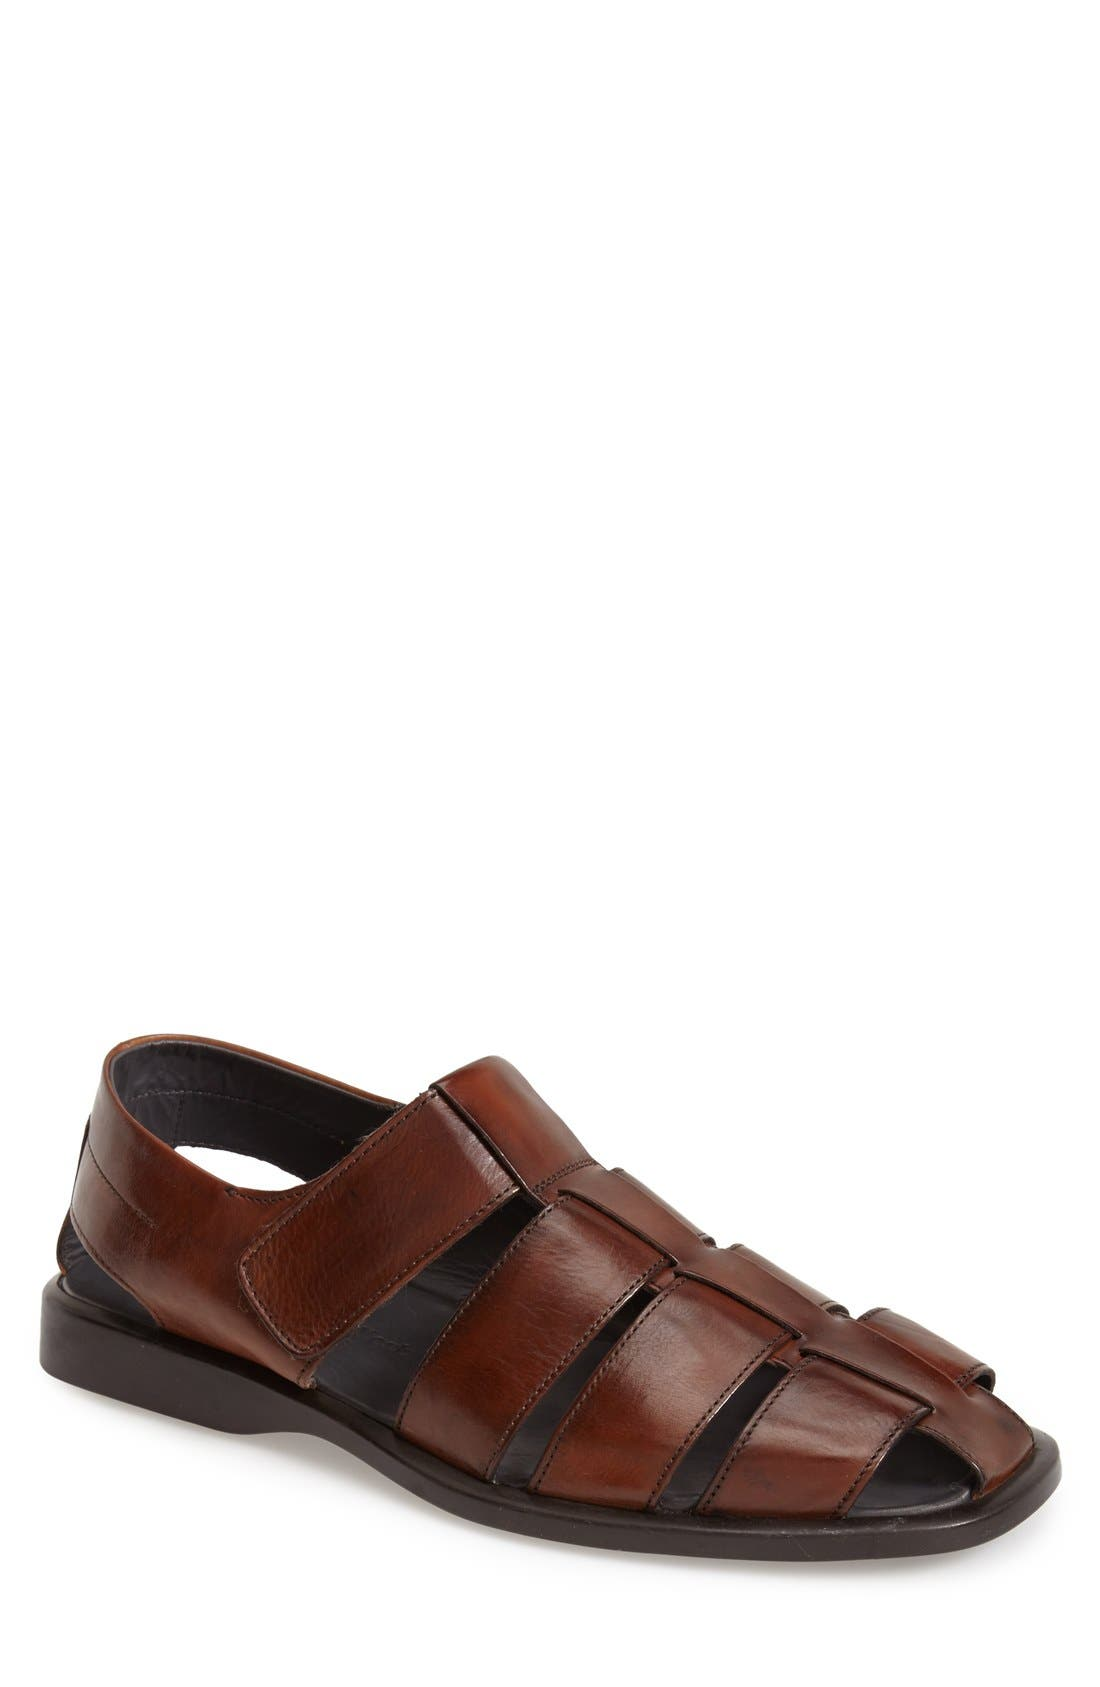 'Barbados' Fisherman Sandal,                         Main,                         color, 219